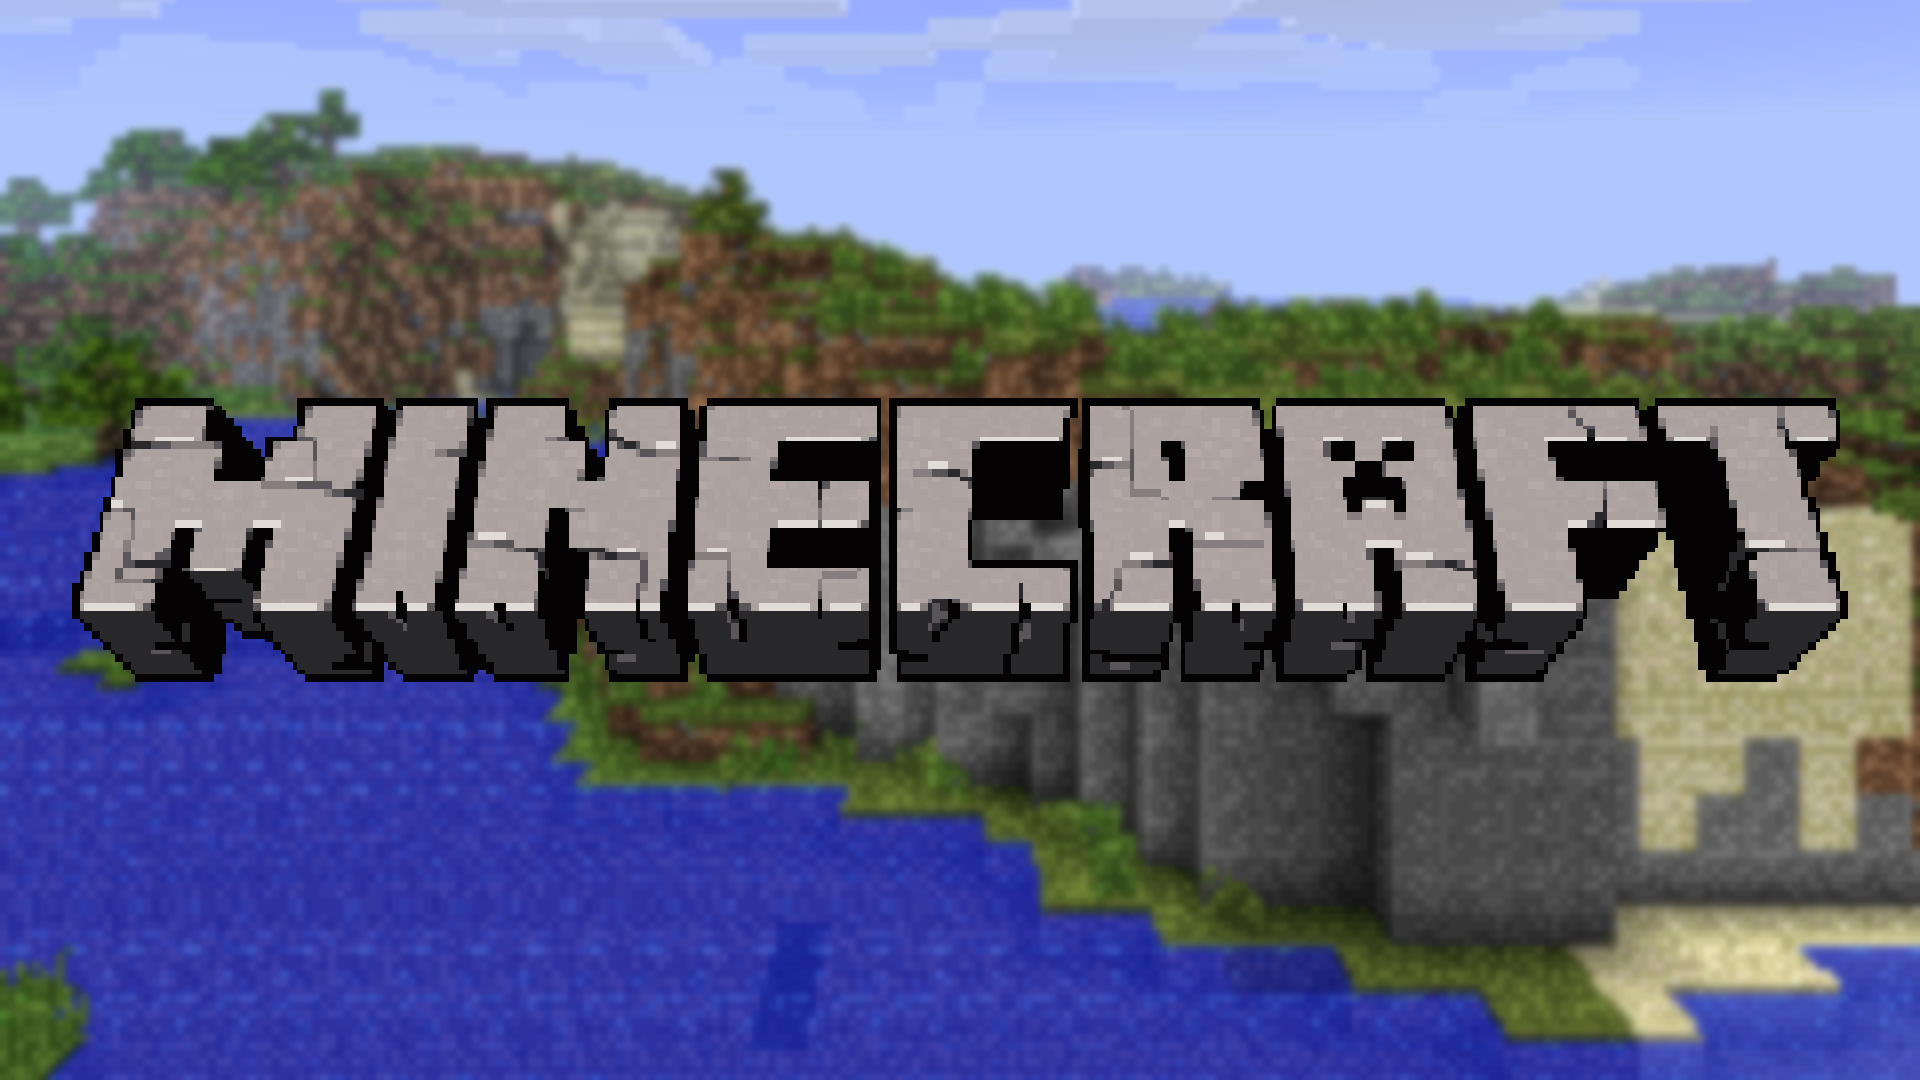 Minecraft Has Made A 1,024 Player Server Using The Newer And Experimental Aether Engine